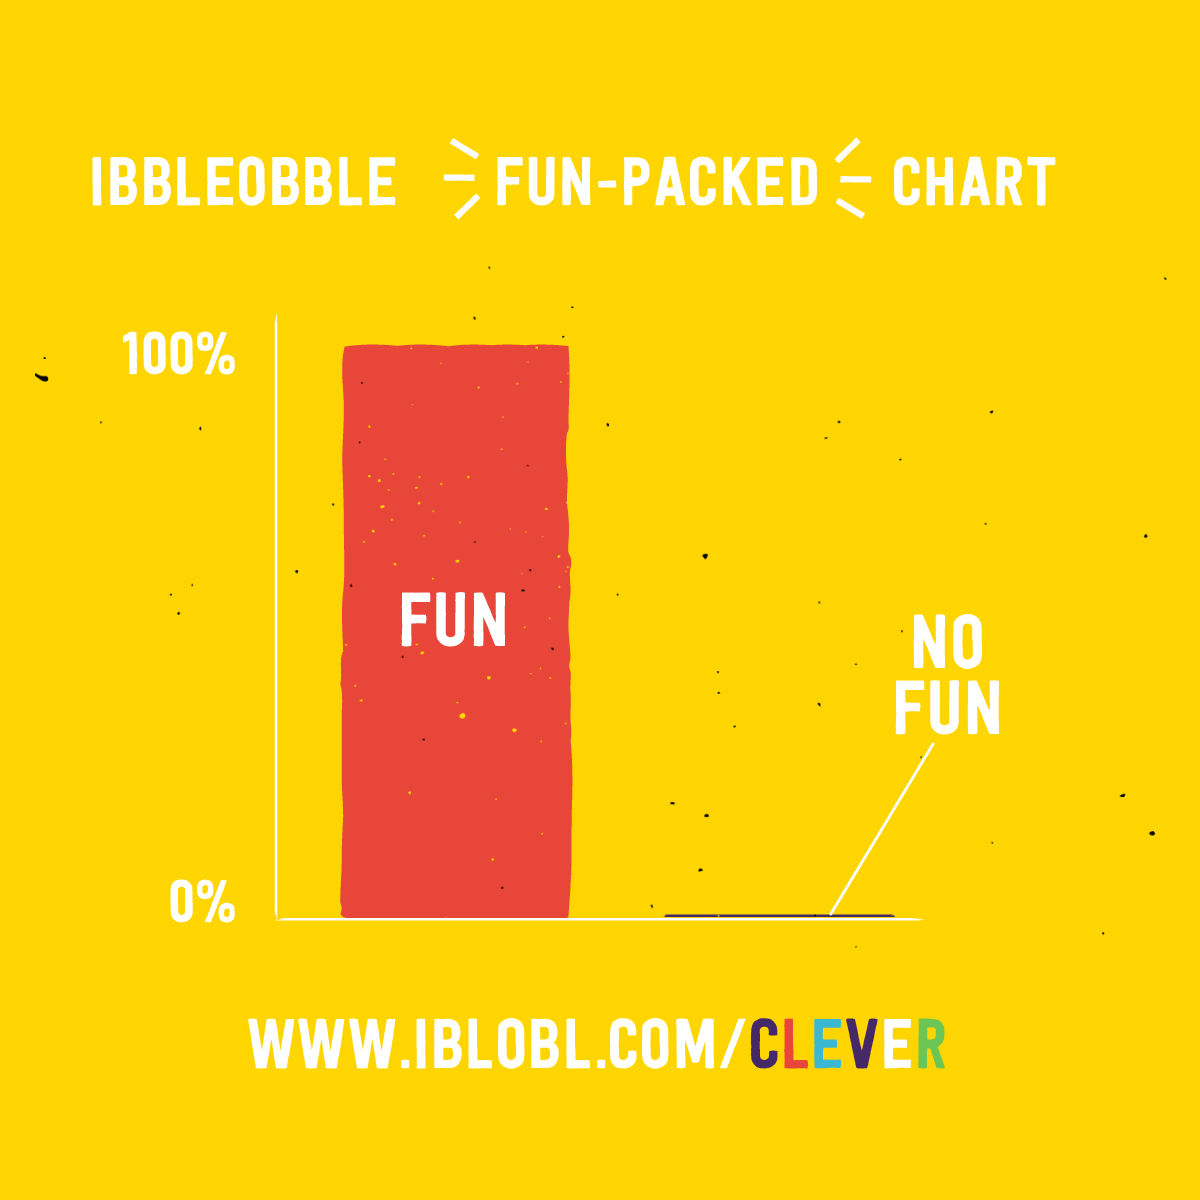 Ibbleobble is 100% Fun-packed